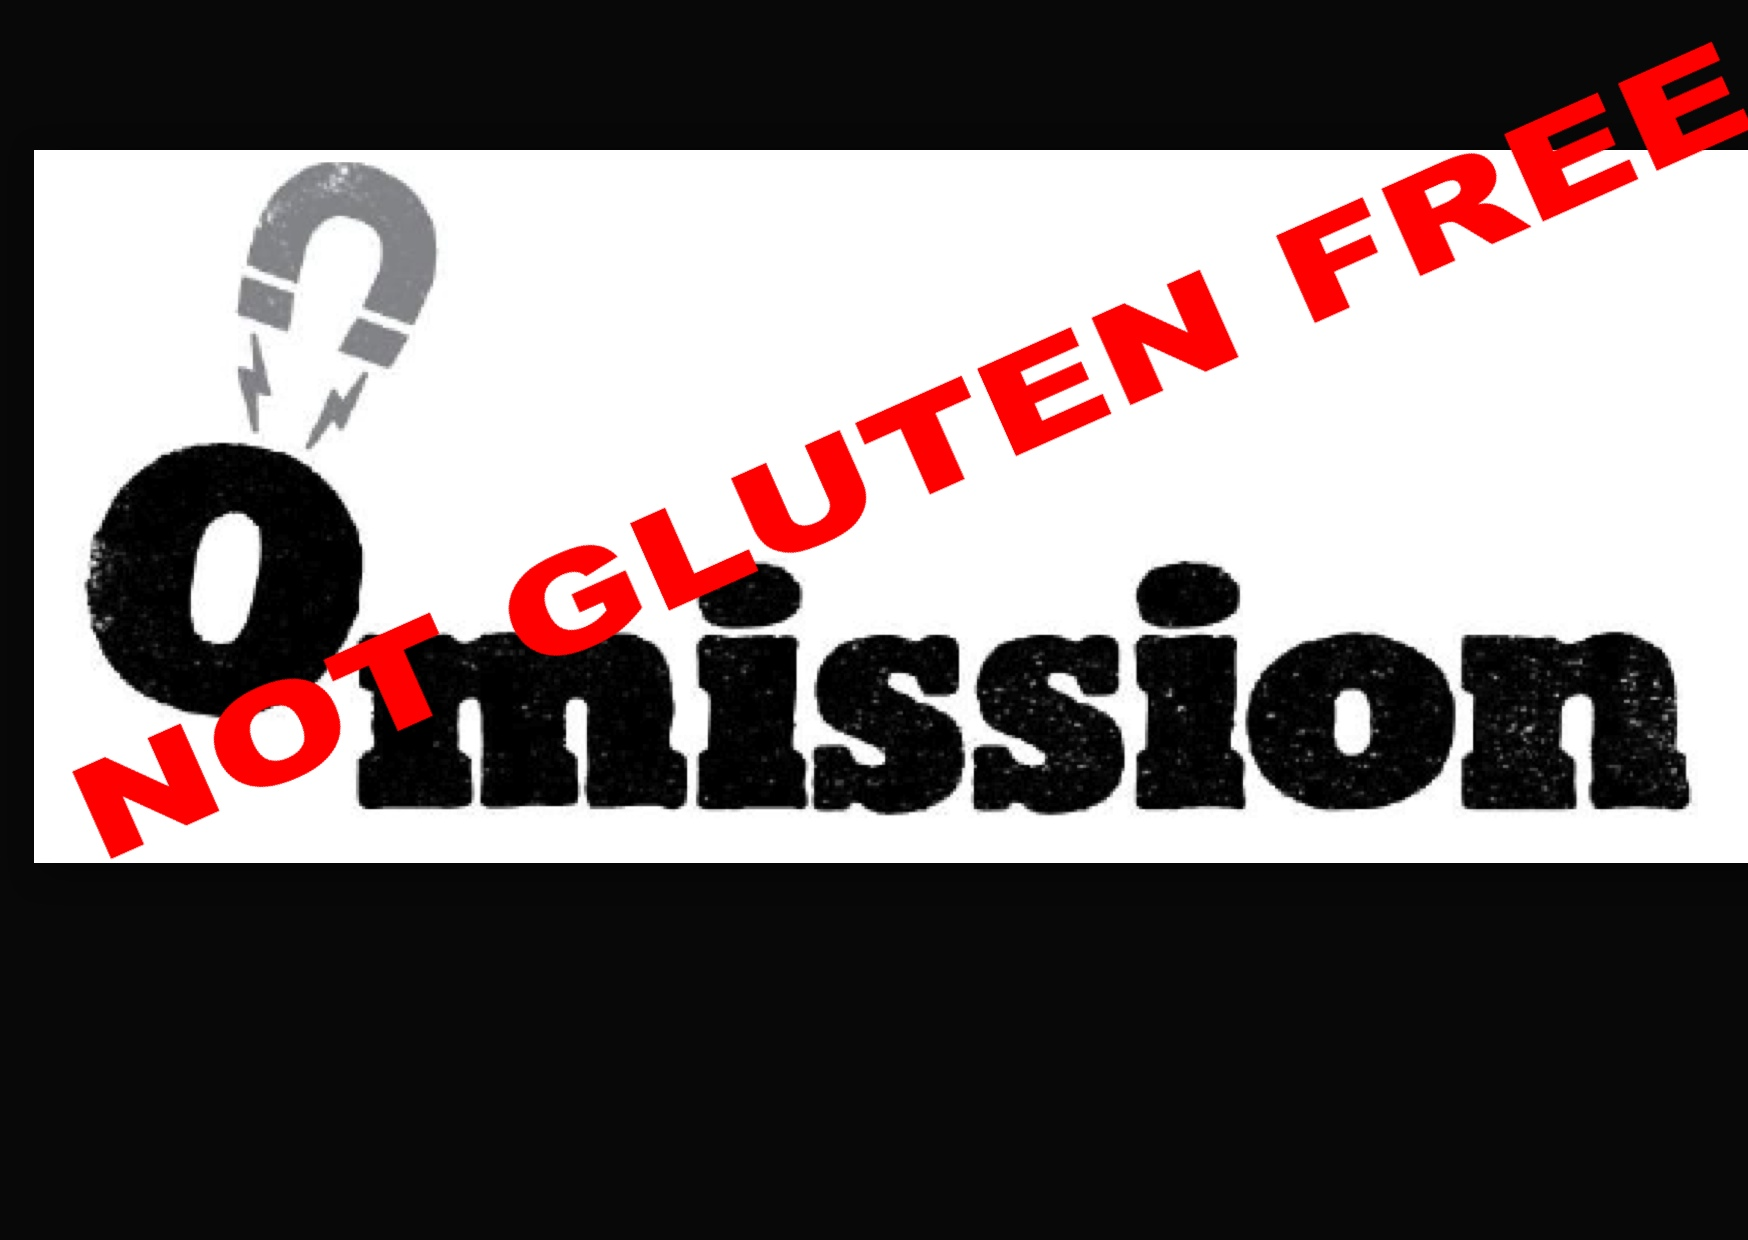 The OMNIPOTENT Celiac Sprue Association Complete with Bad Excuses & Contradictions